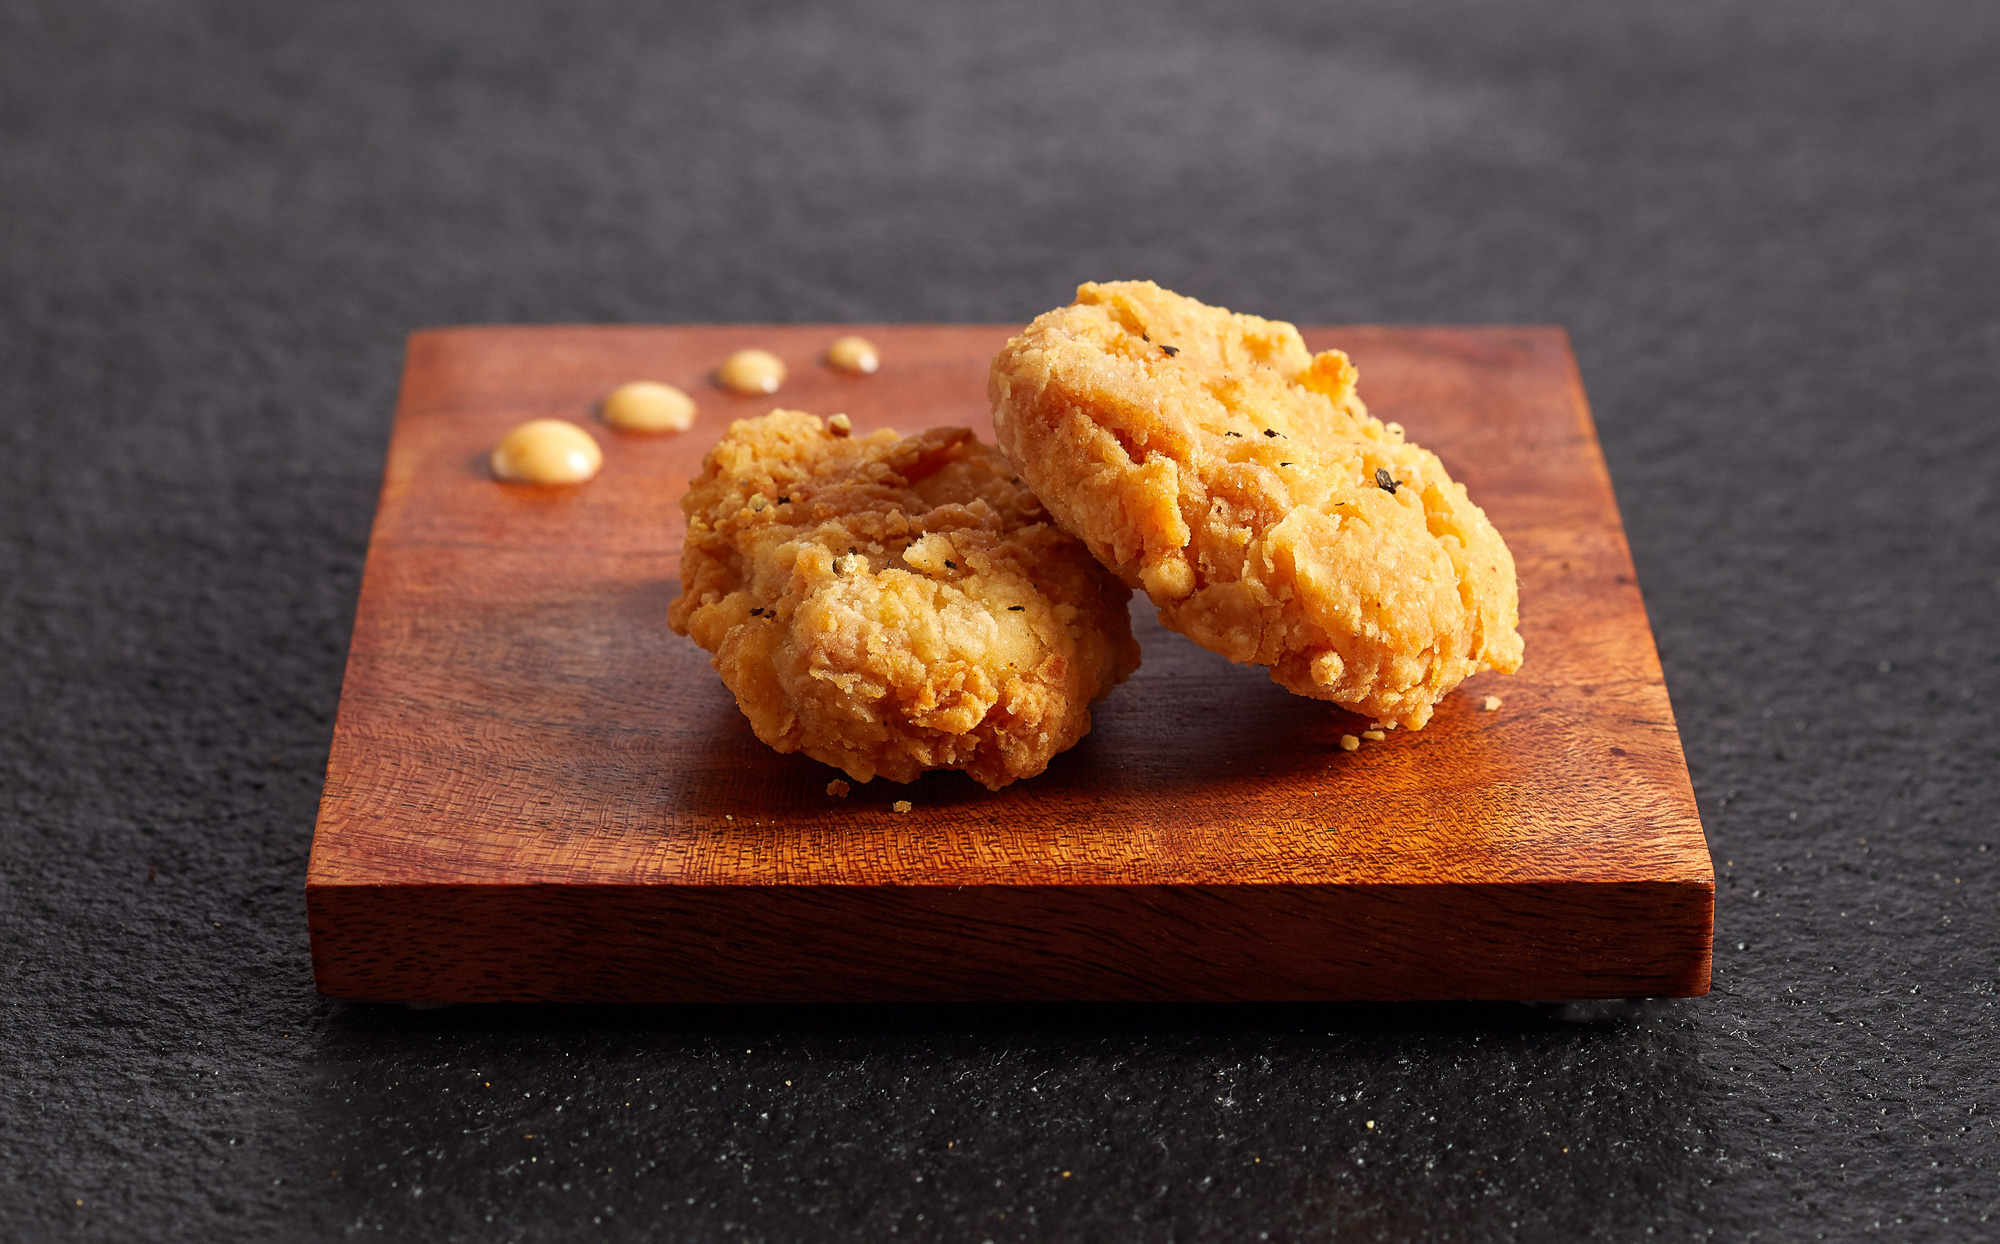 Cultivated chicken on a wood serving dish